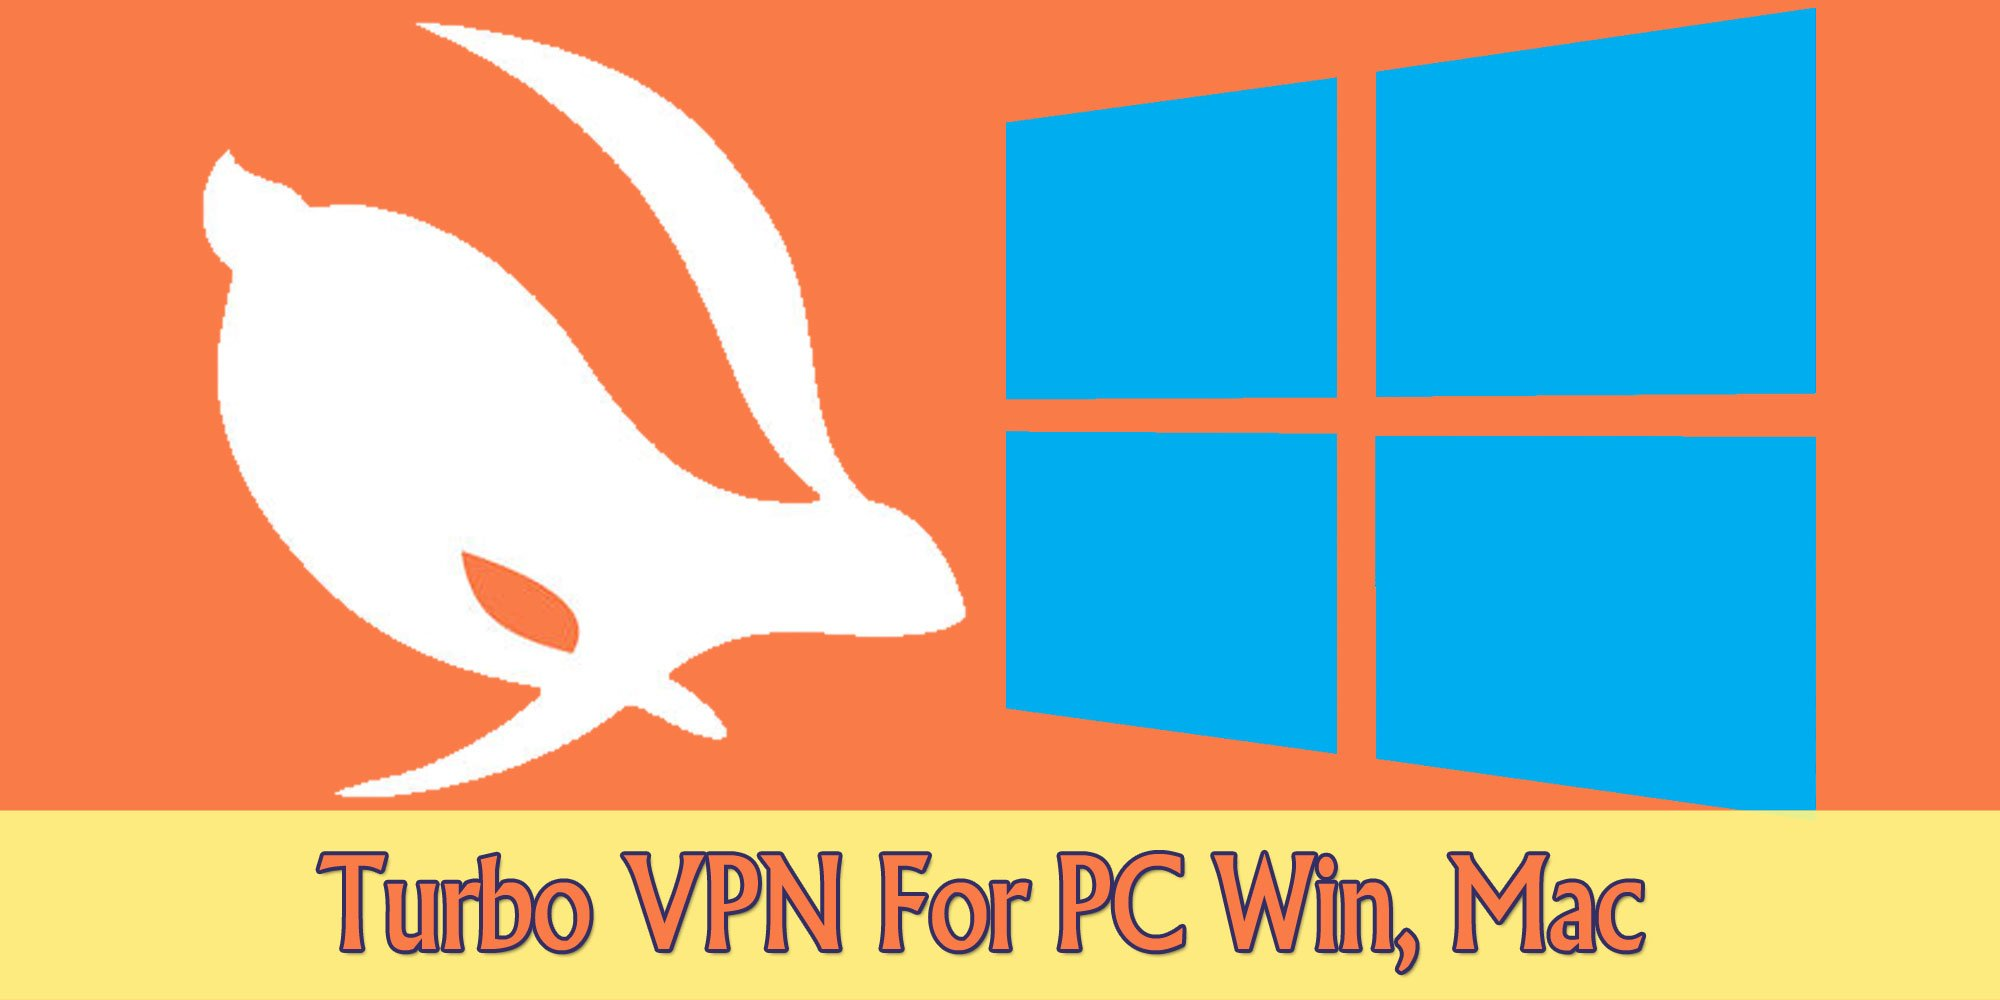 Download Turbo VPN for PC Windows